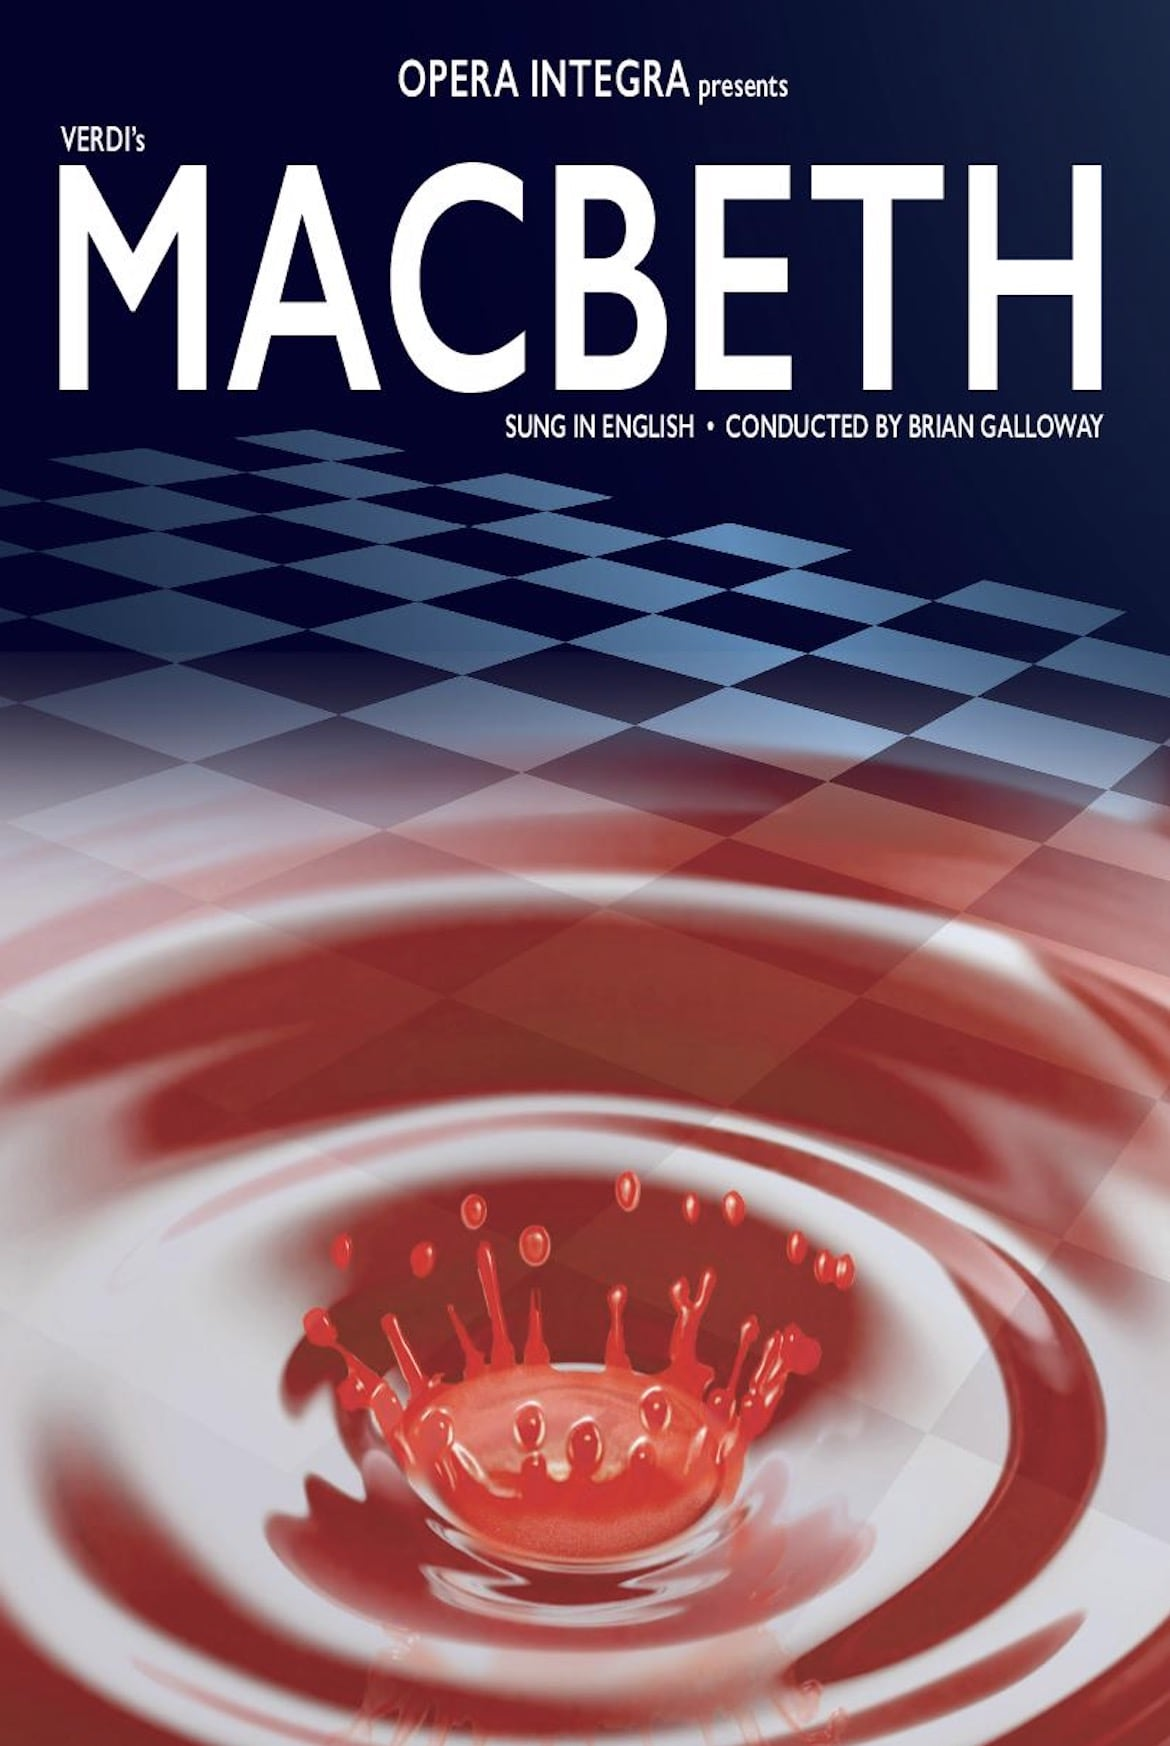 Macbeth 2016 Directed by Ella Marchment for Opera Integra London